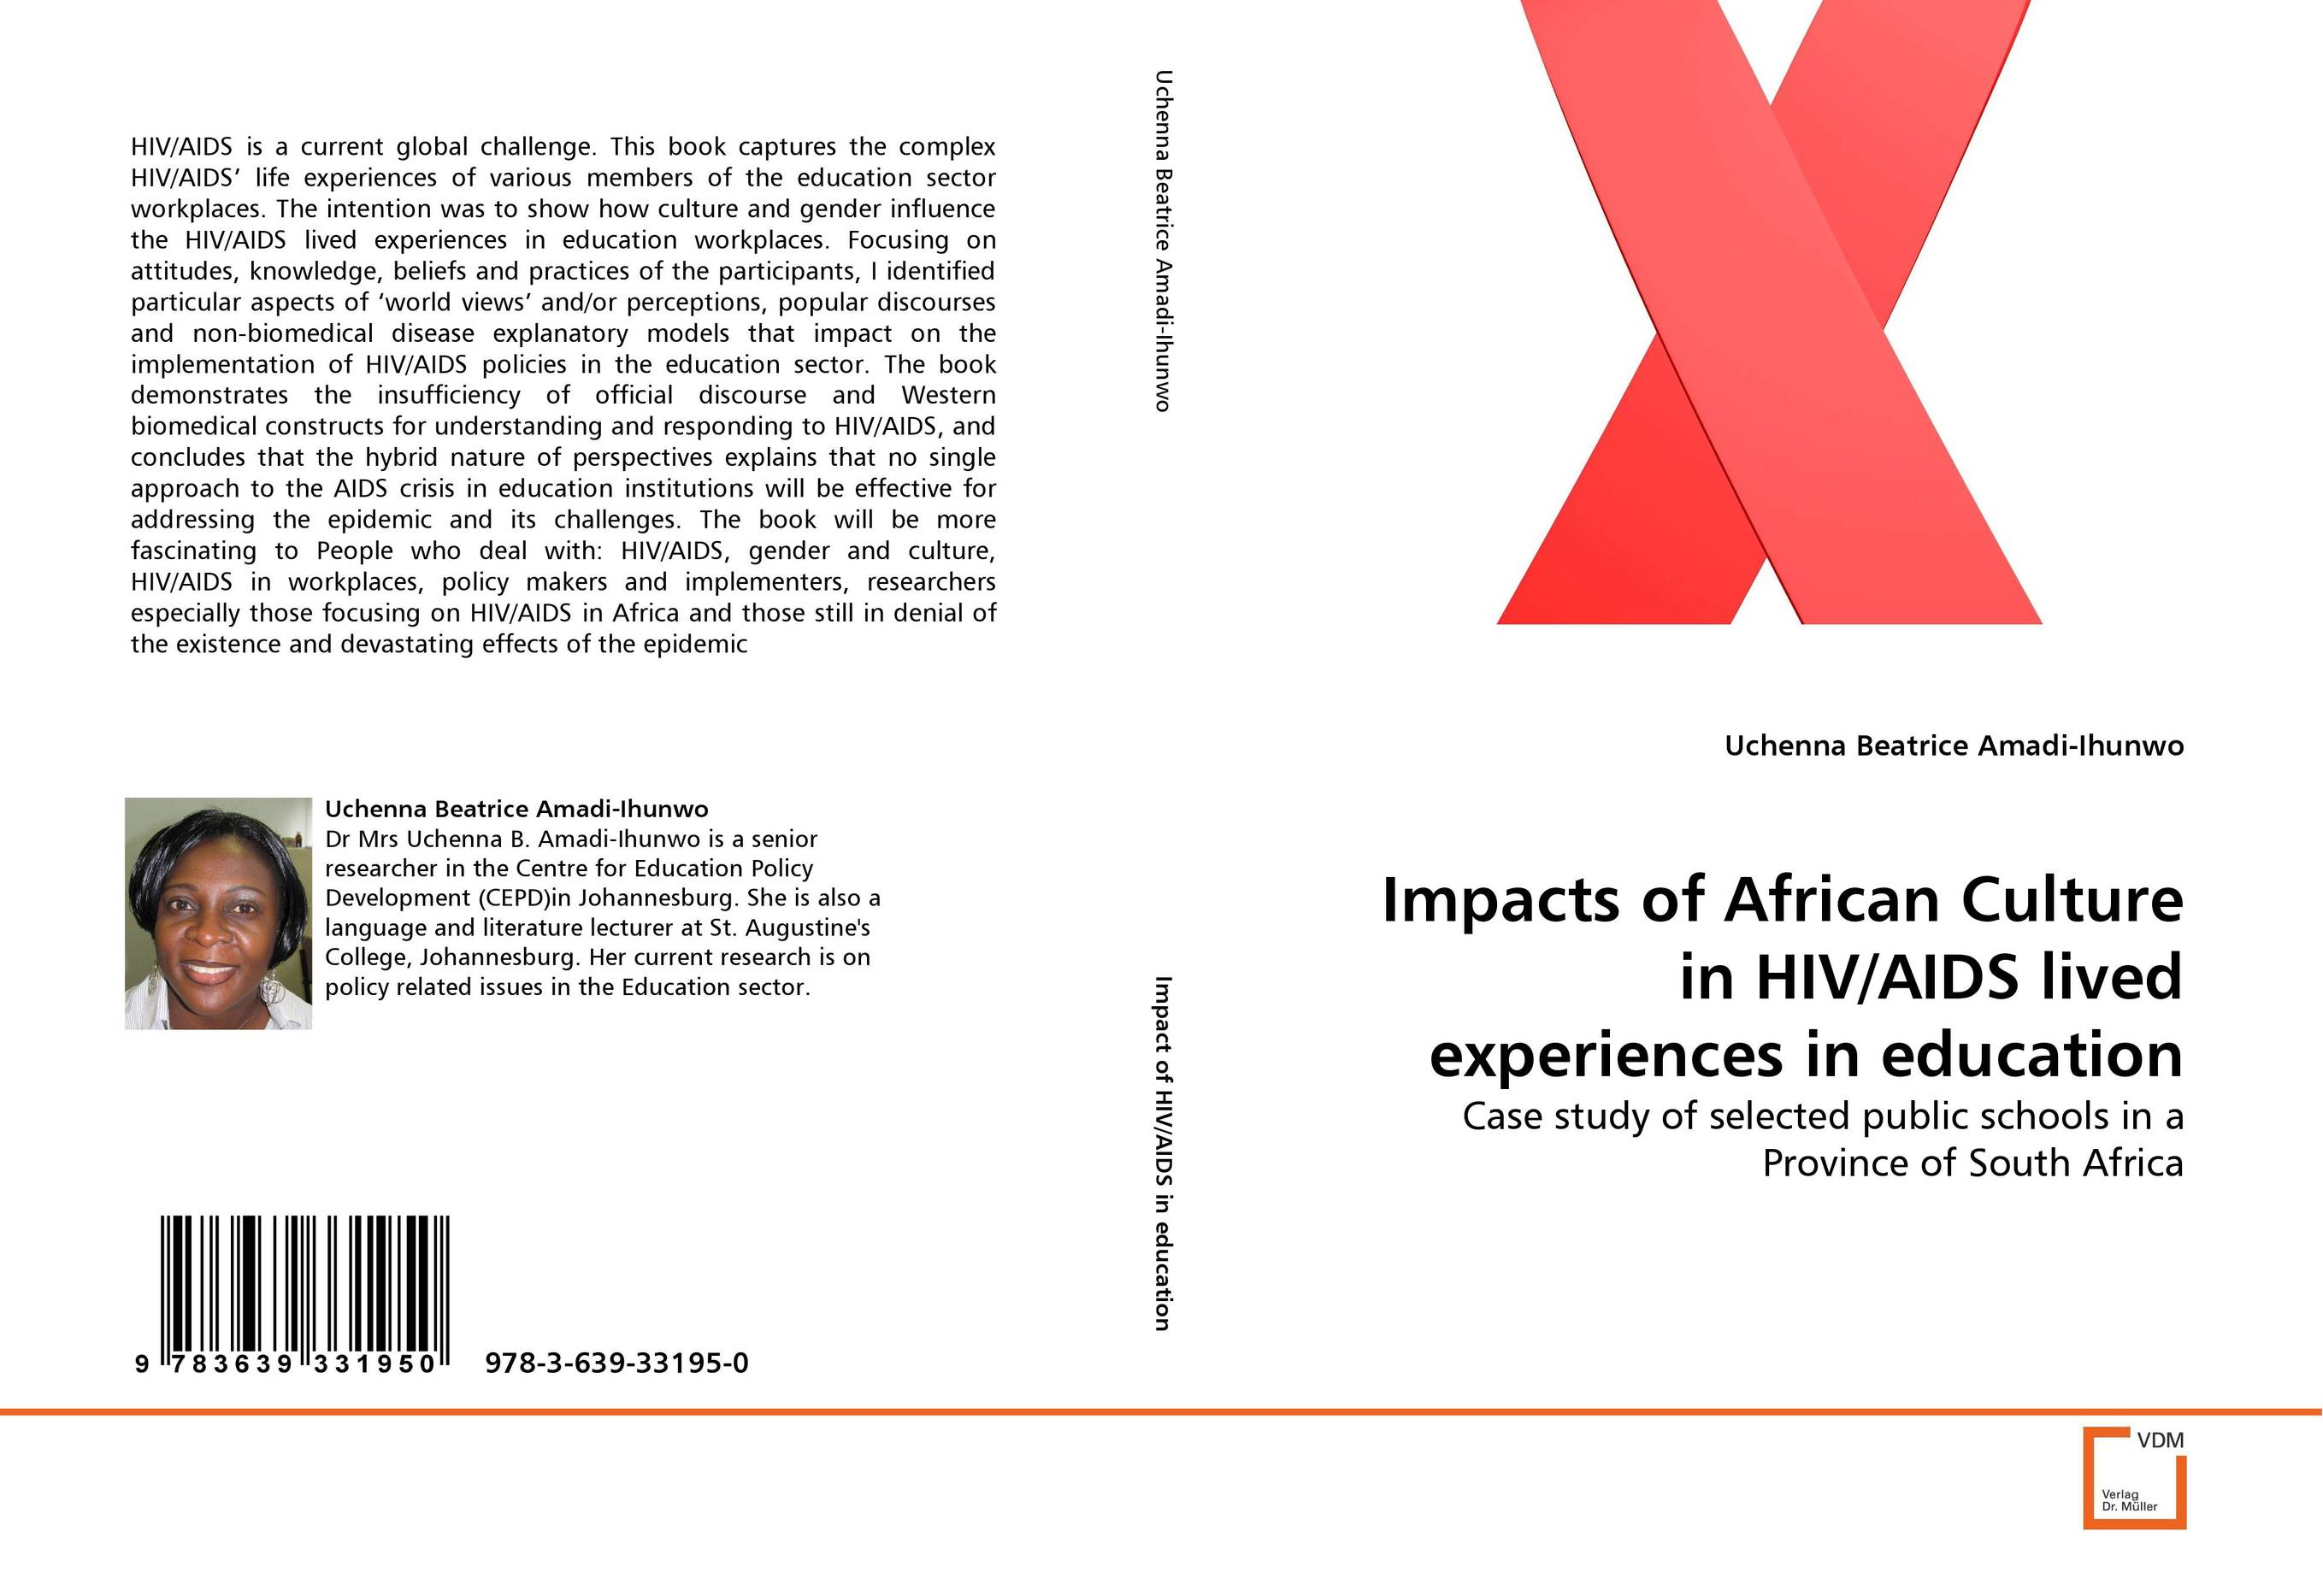 Impacts of African Culture in HIV/AIDS lived experiences in education купить